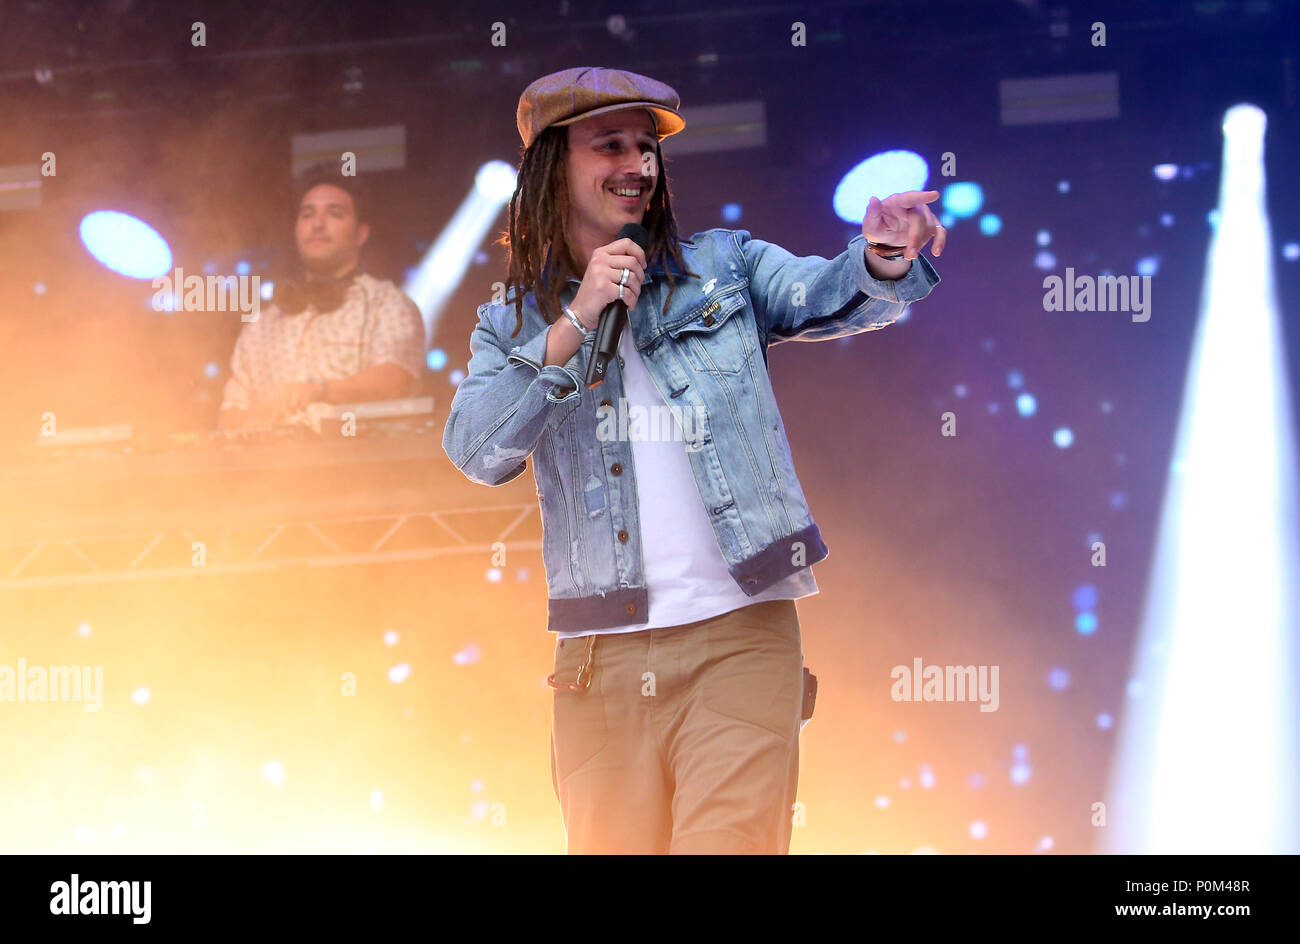 JP Cooper on stage during Capital's Summertime Ball with